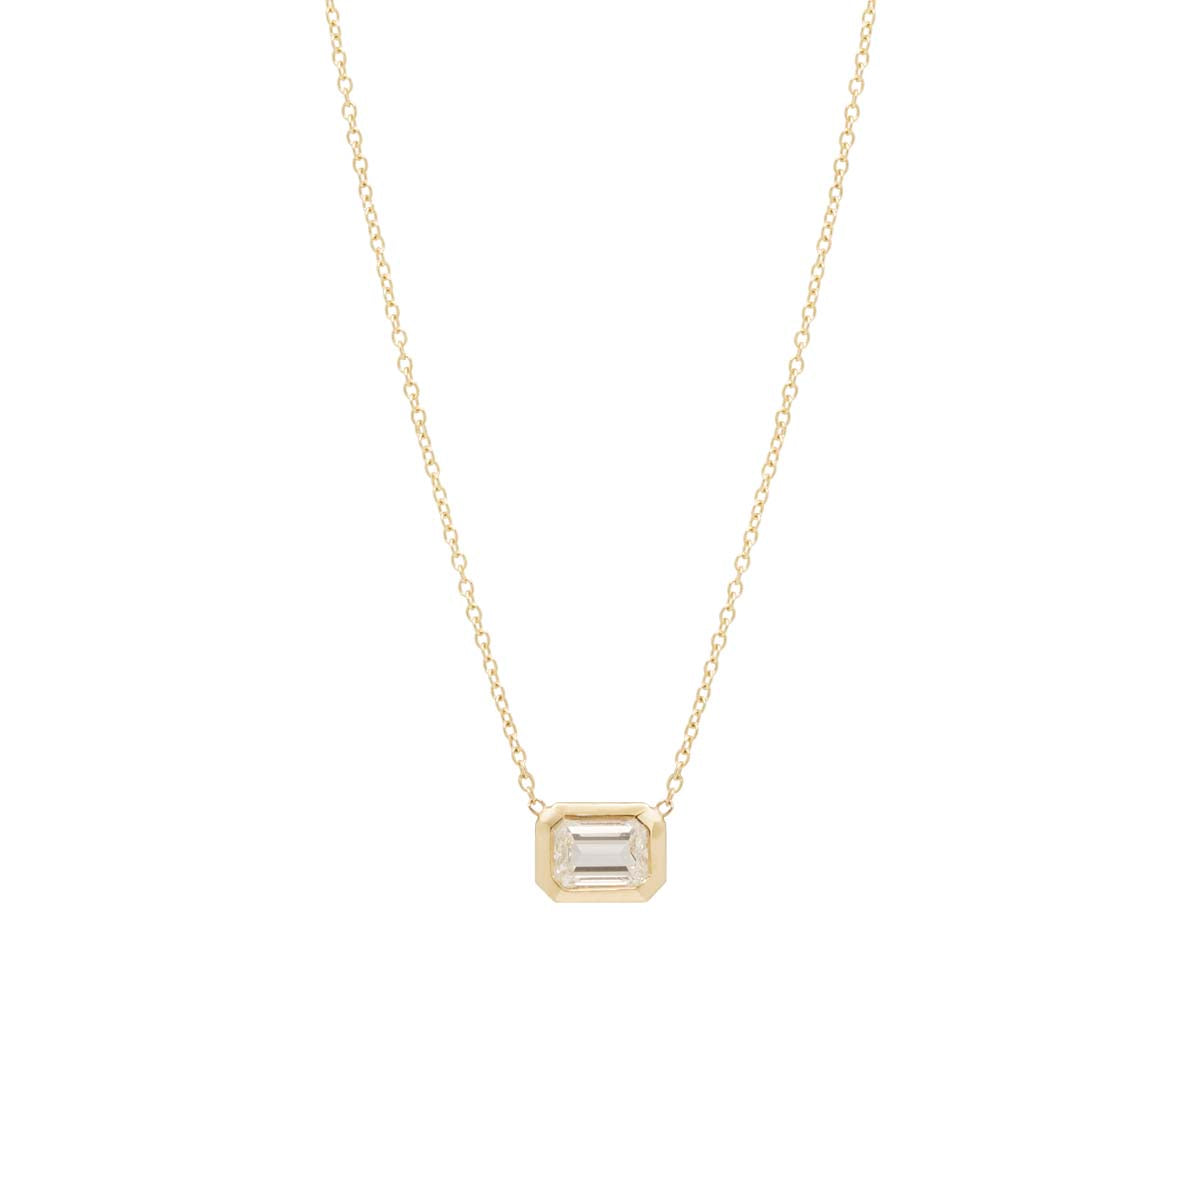 Zoë Chicco 14kt Yellow Gold Emerald Cut White Diamond Necklace